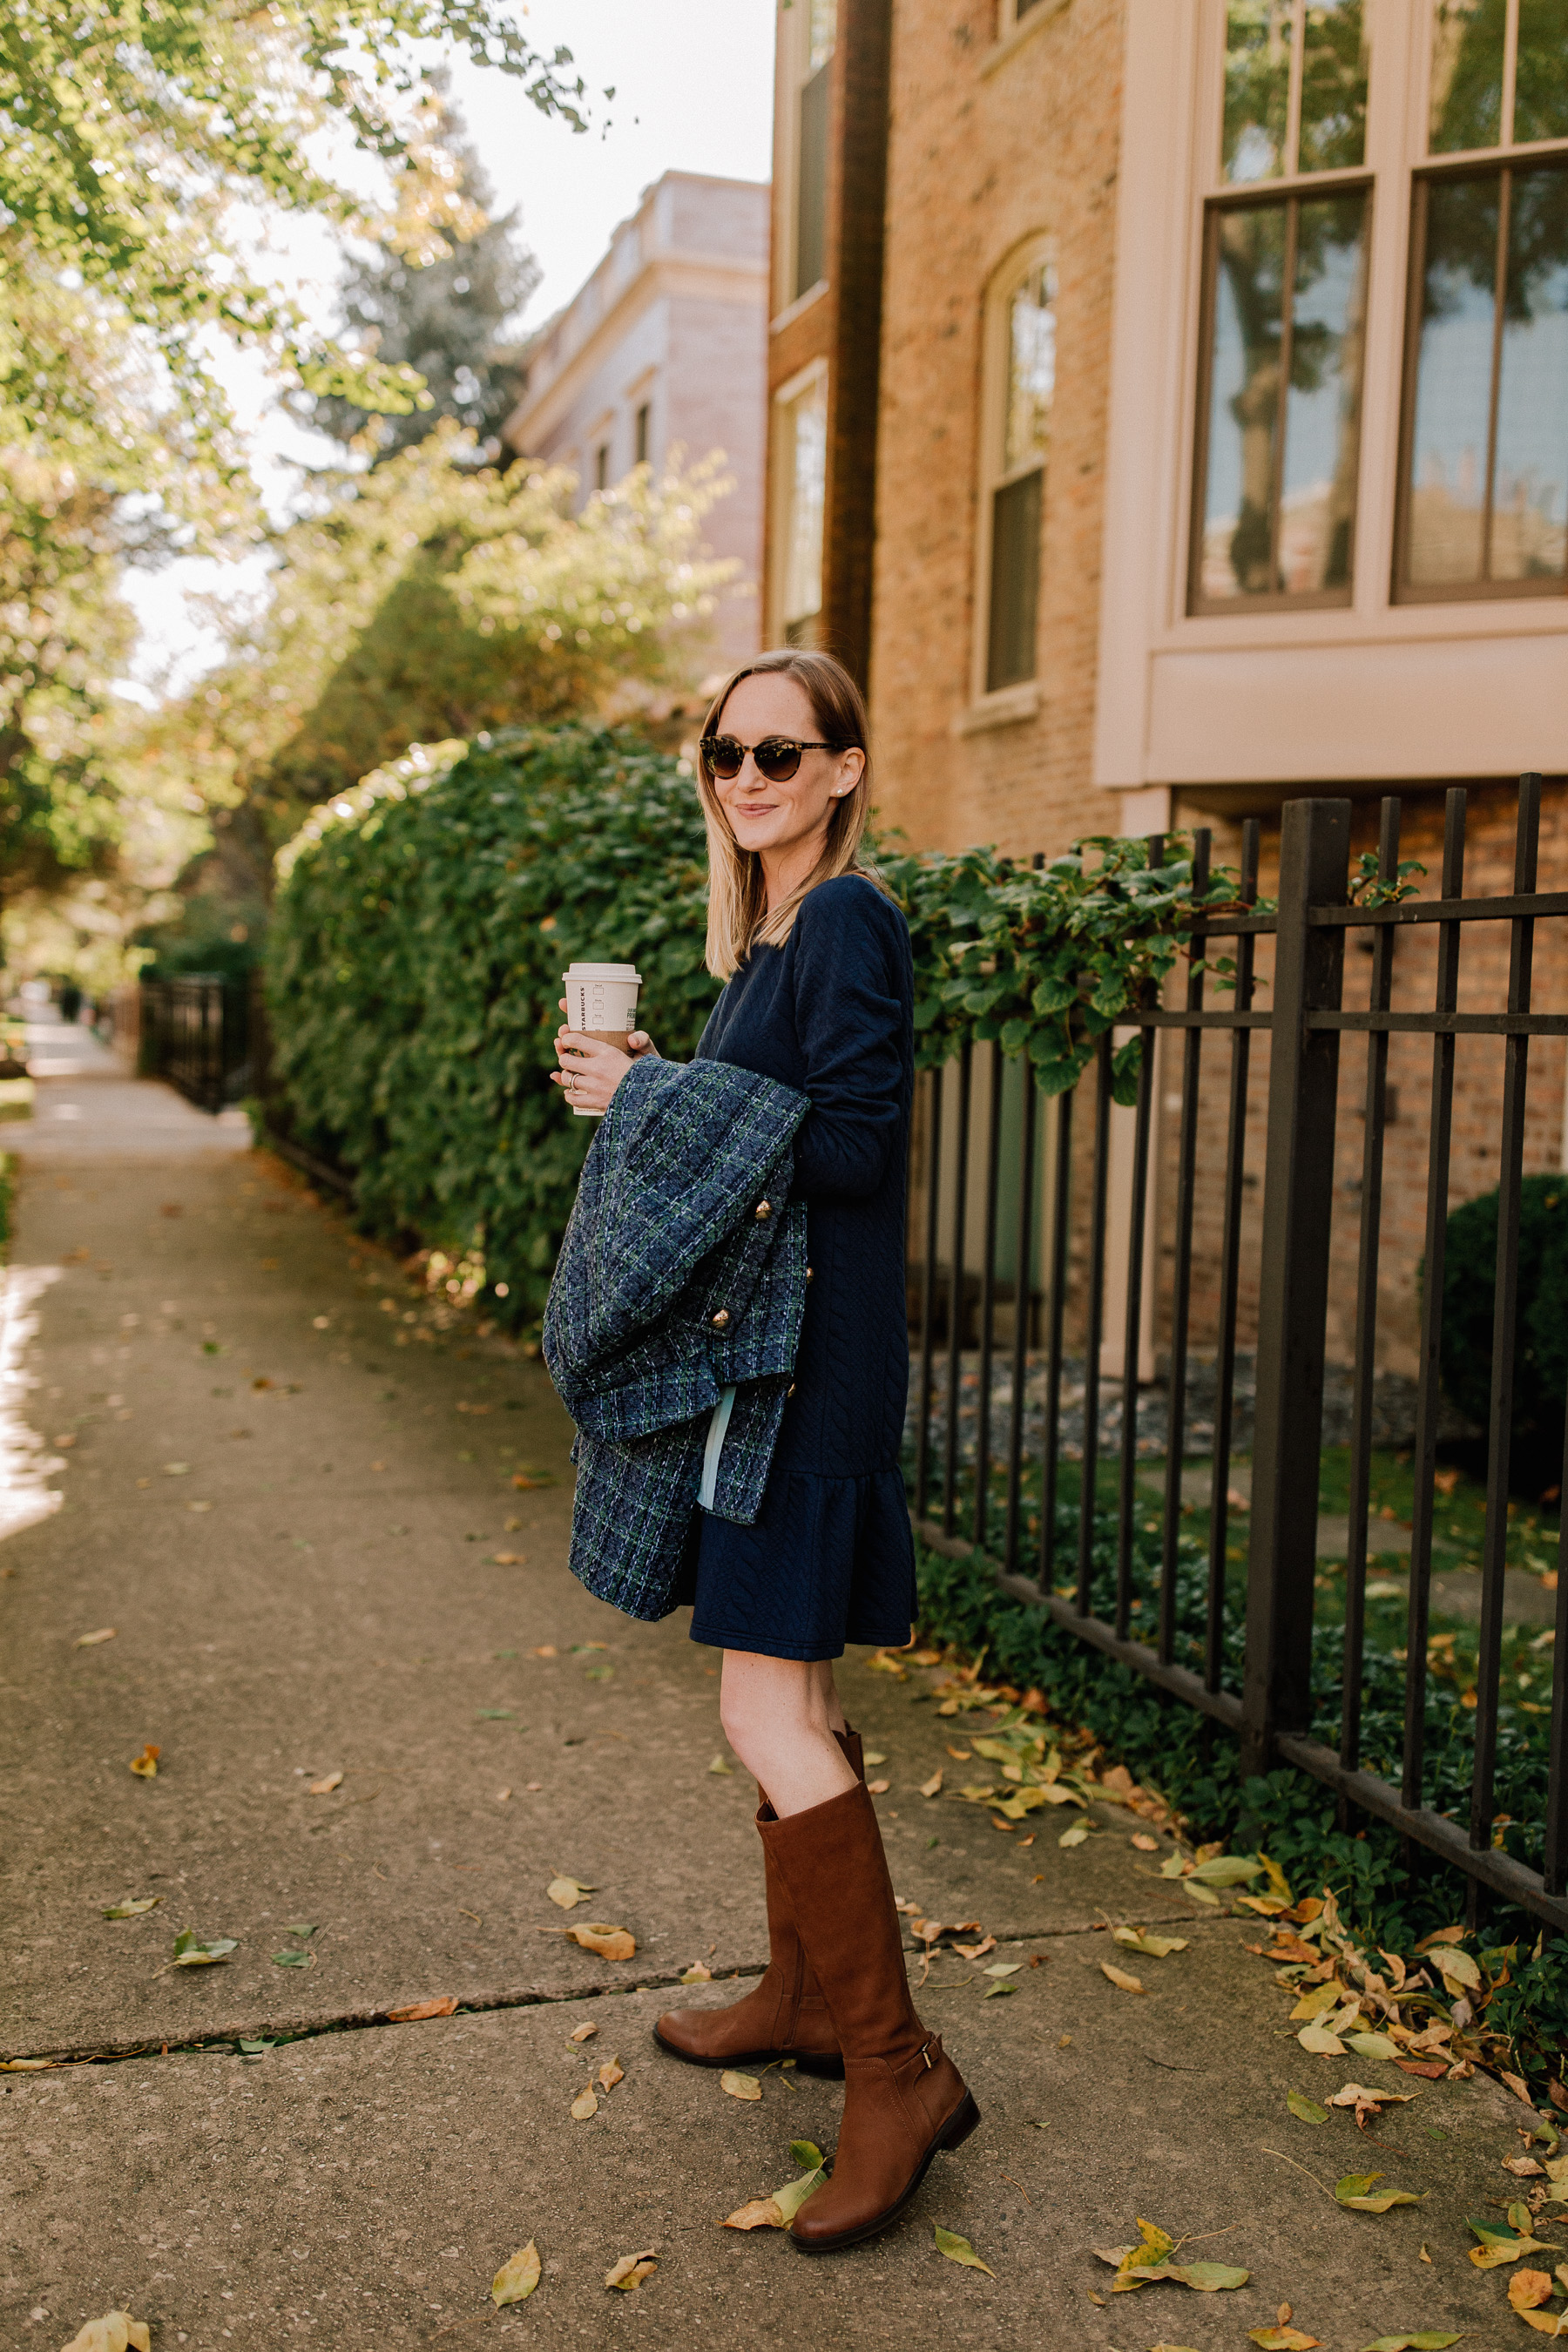 Sail to Sable Navy Tweed Coat and Navy Cable-Knit Dress c/o / Waterproof Leather Boots